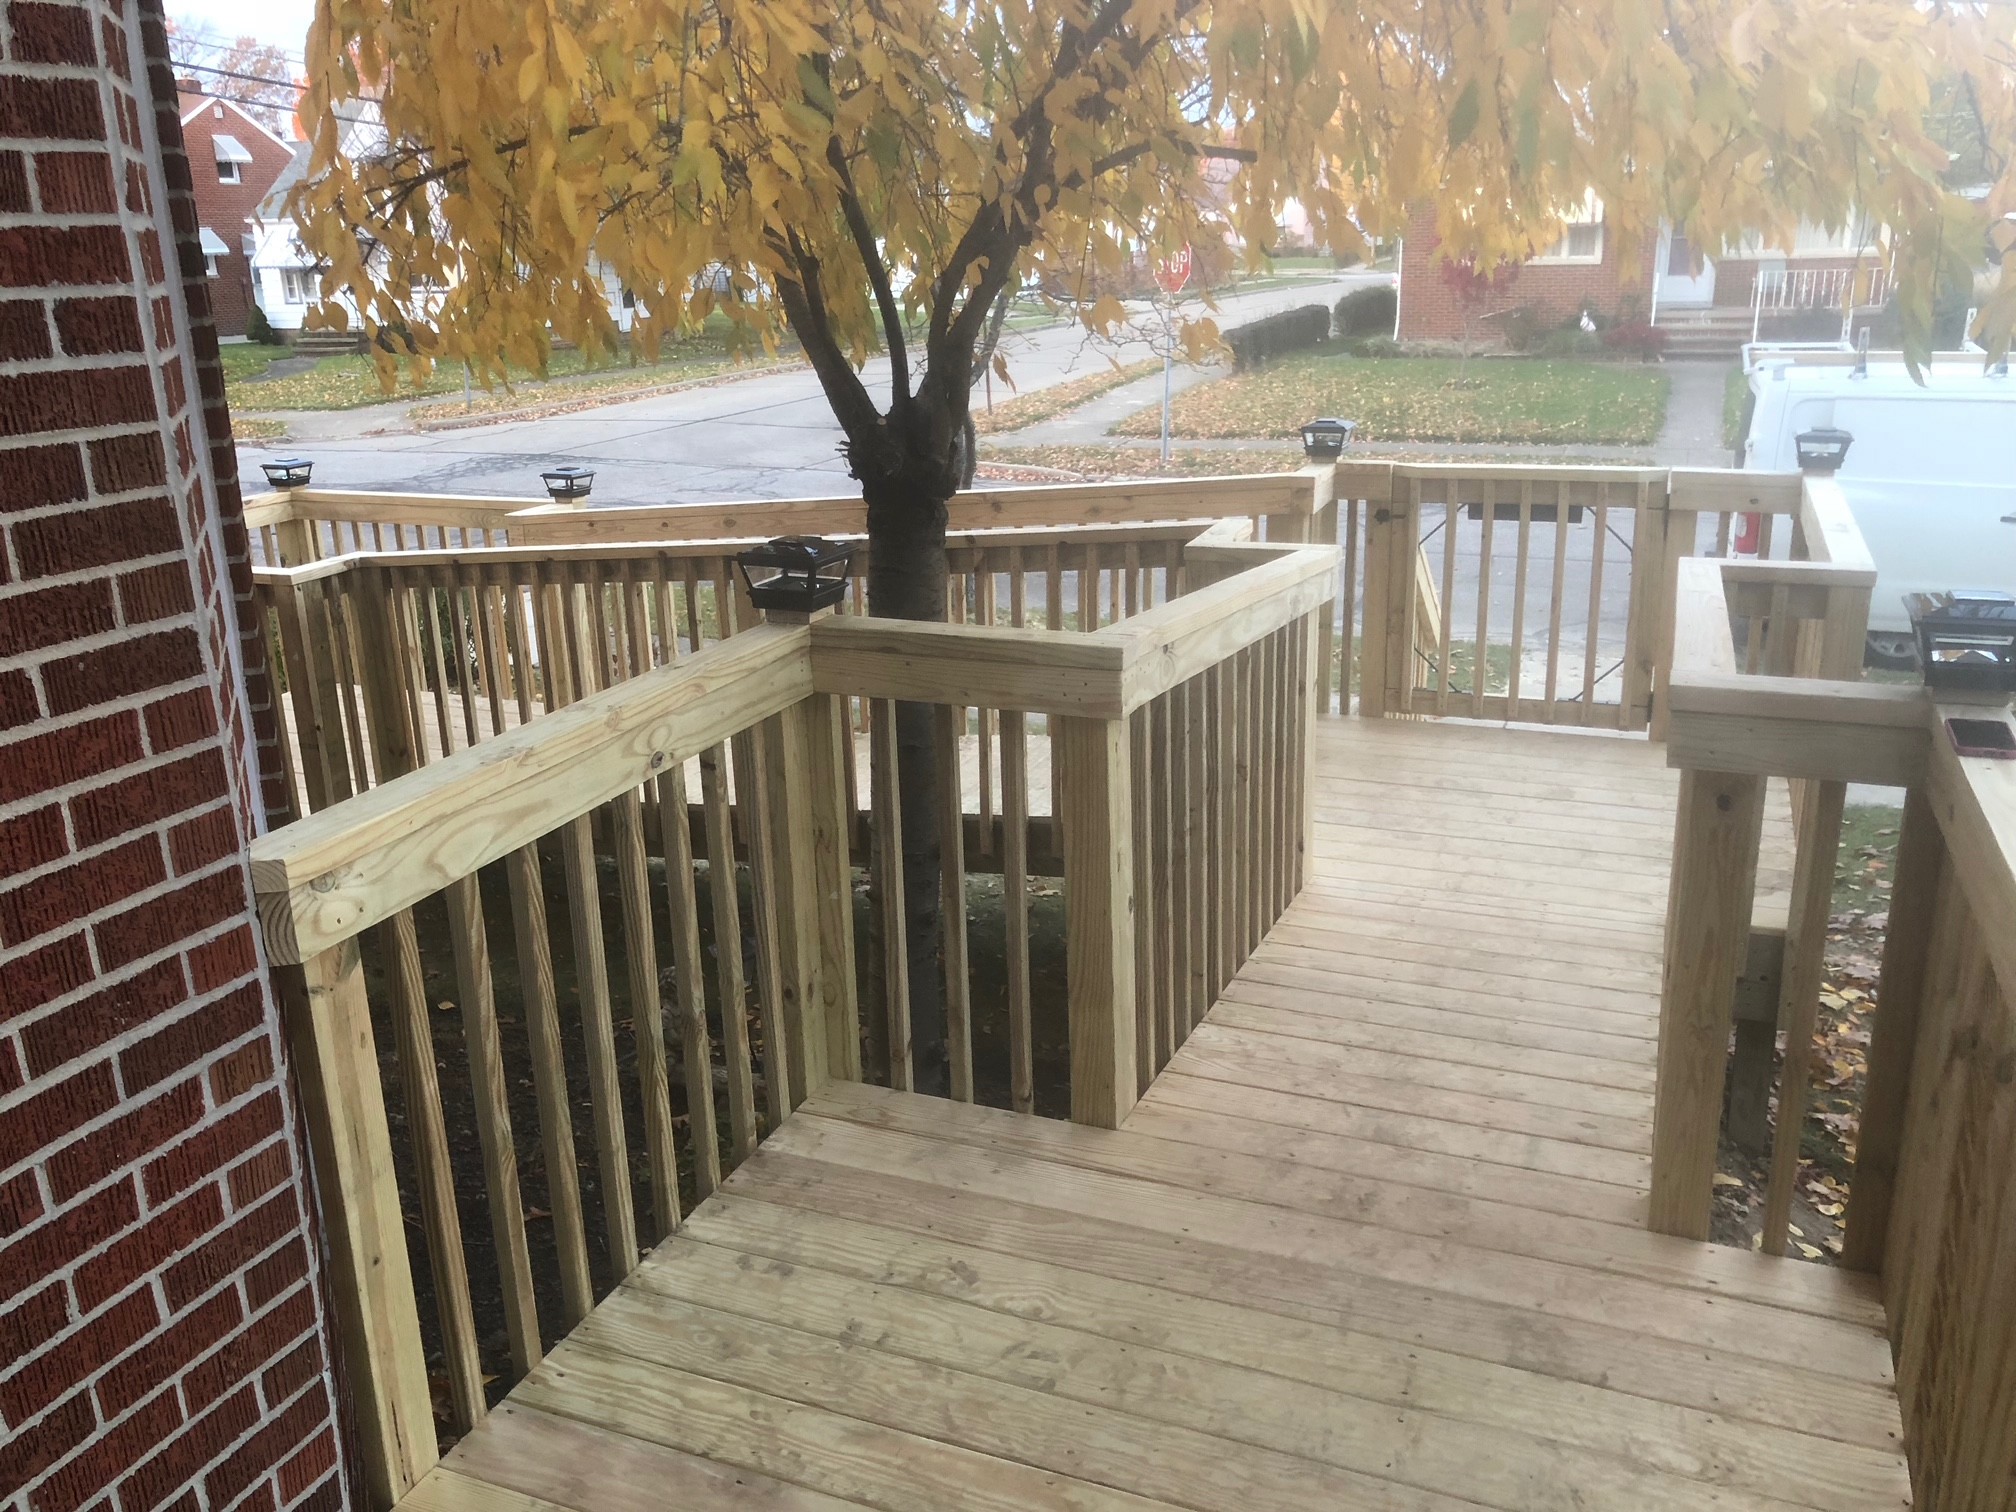 Permanent Wooden Wheelchair Ramp View From Front Door in Akron, OH